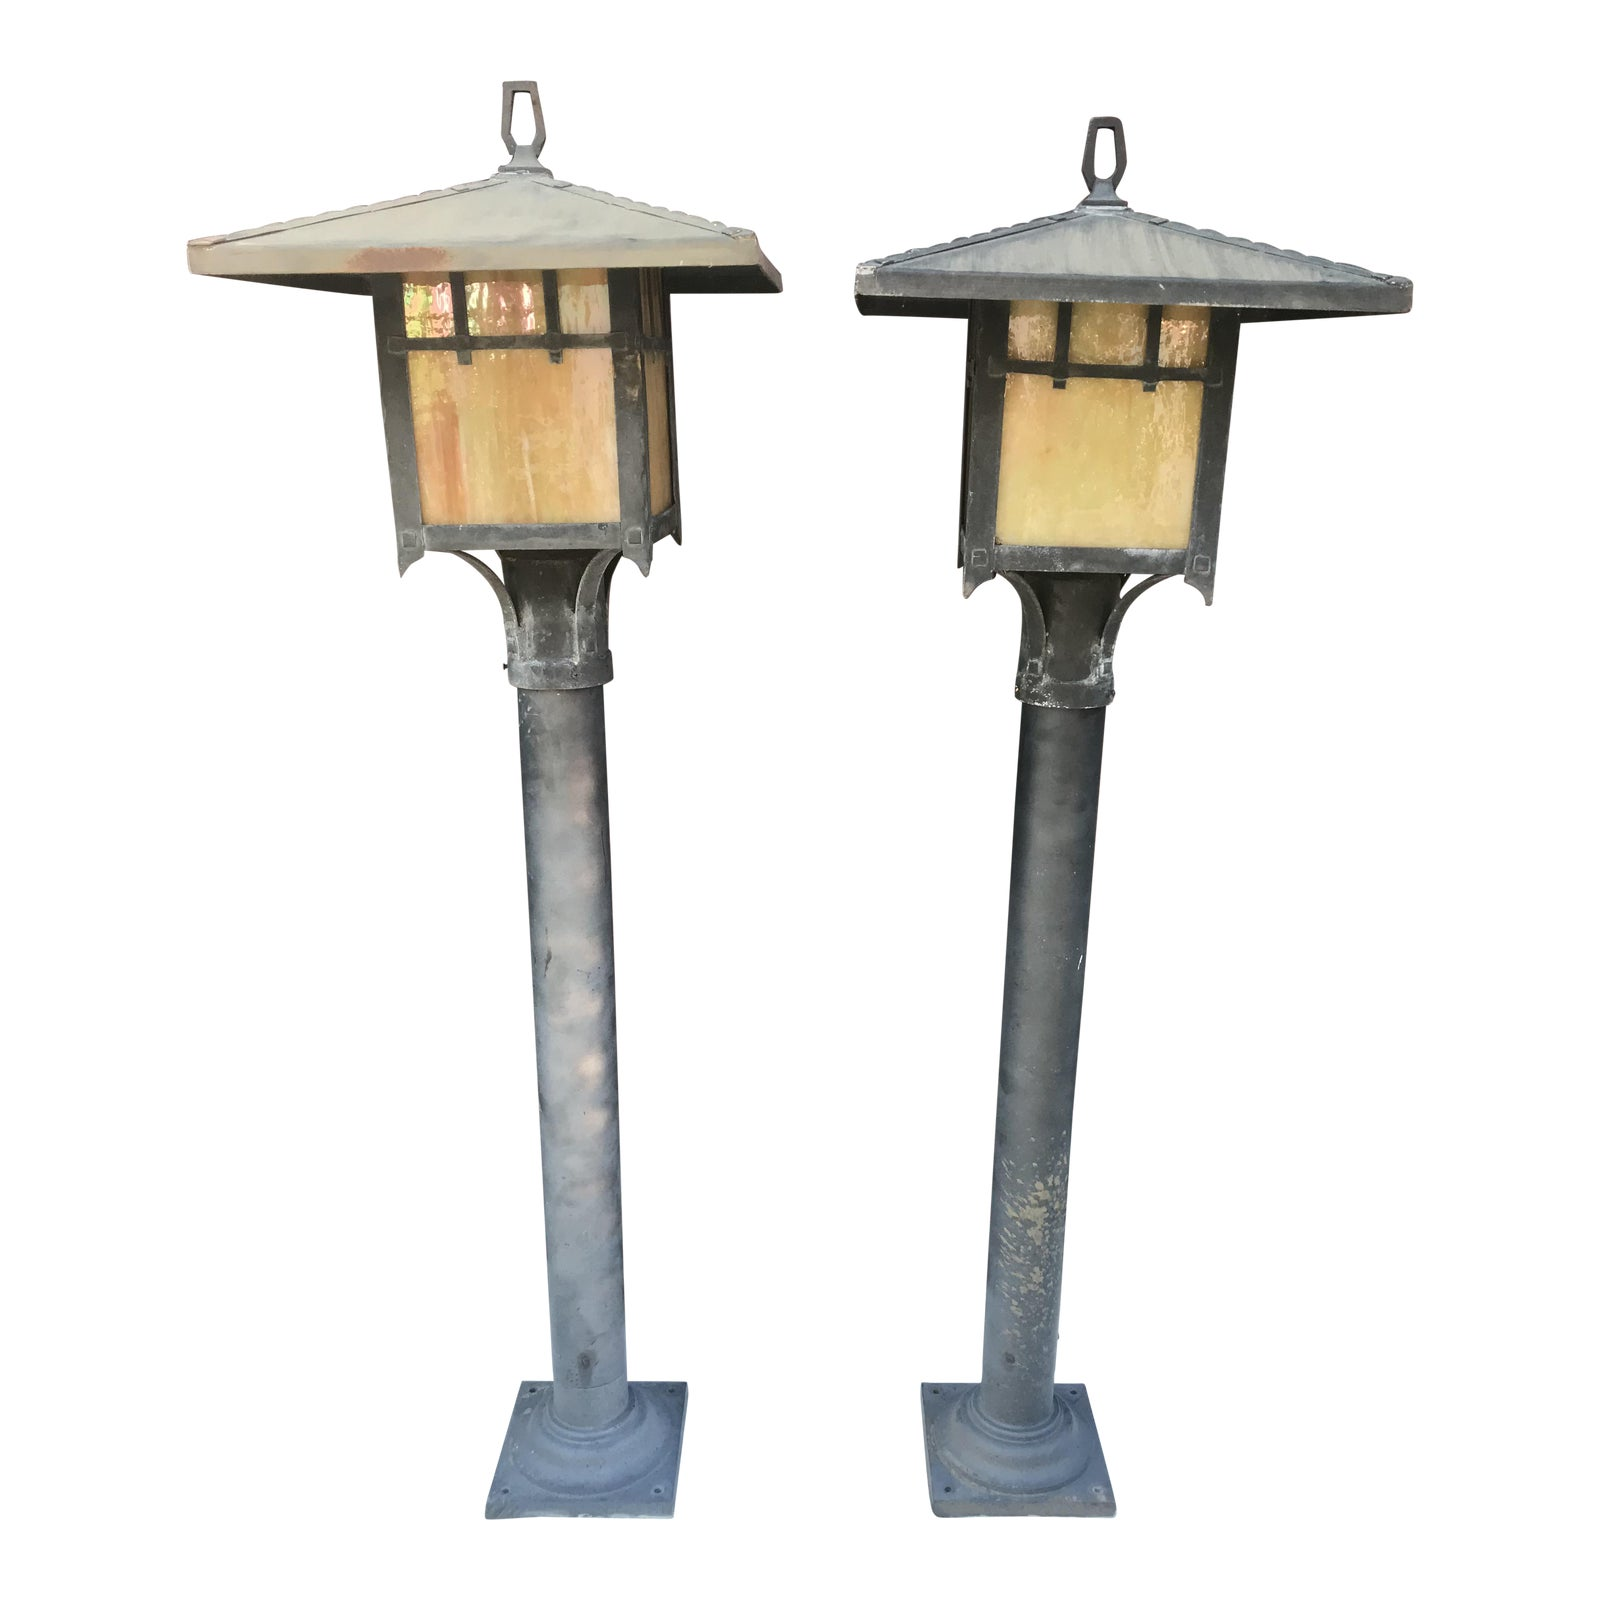 Vintage Meyda Style Asian Inspired Outdoor Lamp Posts  A